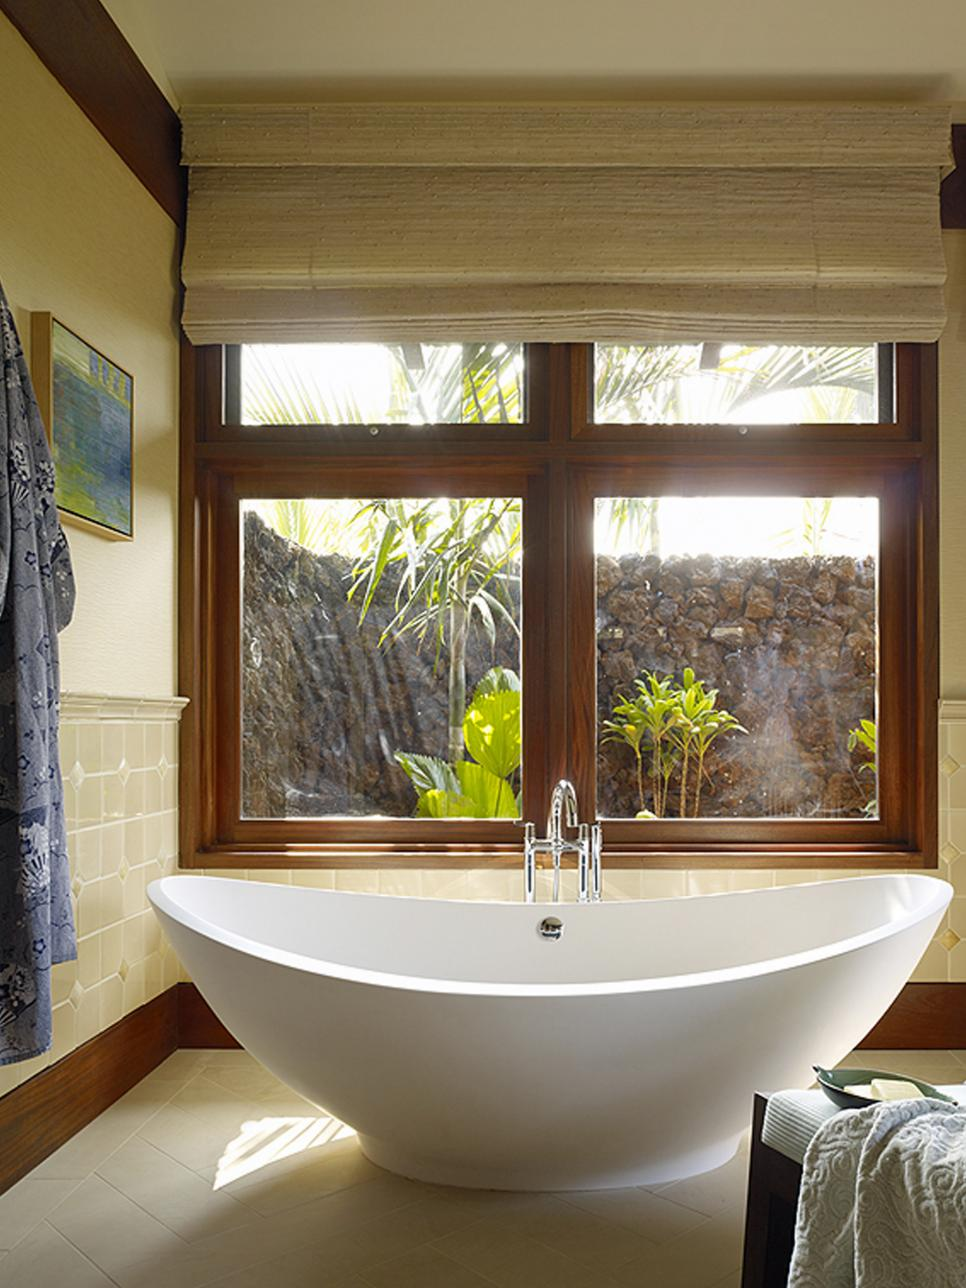 Fantastic Bathroom Designers That You Will Love Their Projects Largest Home Design Picture Inspirations Pitcheantrous